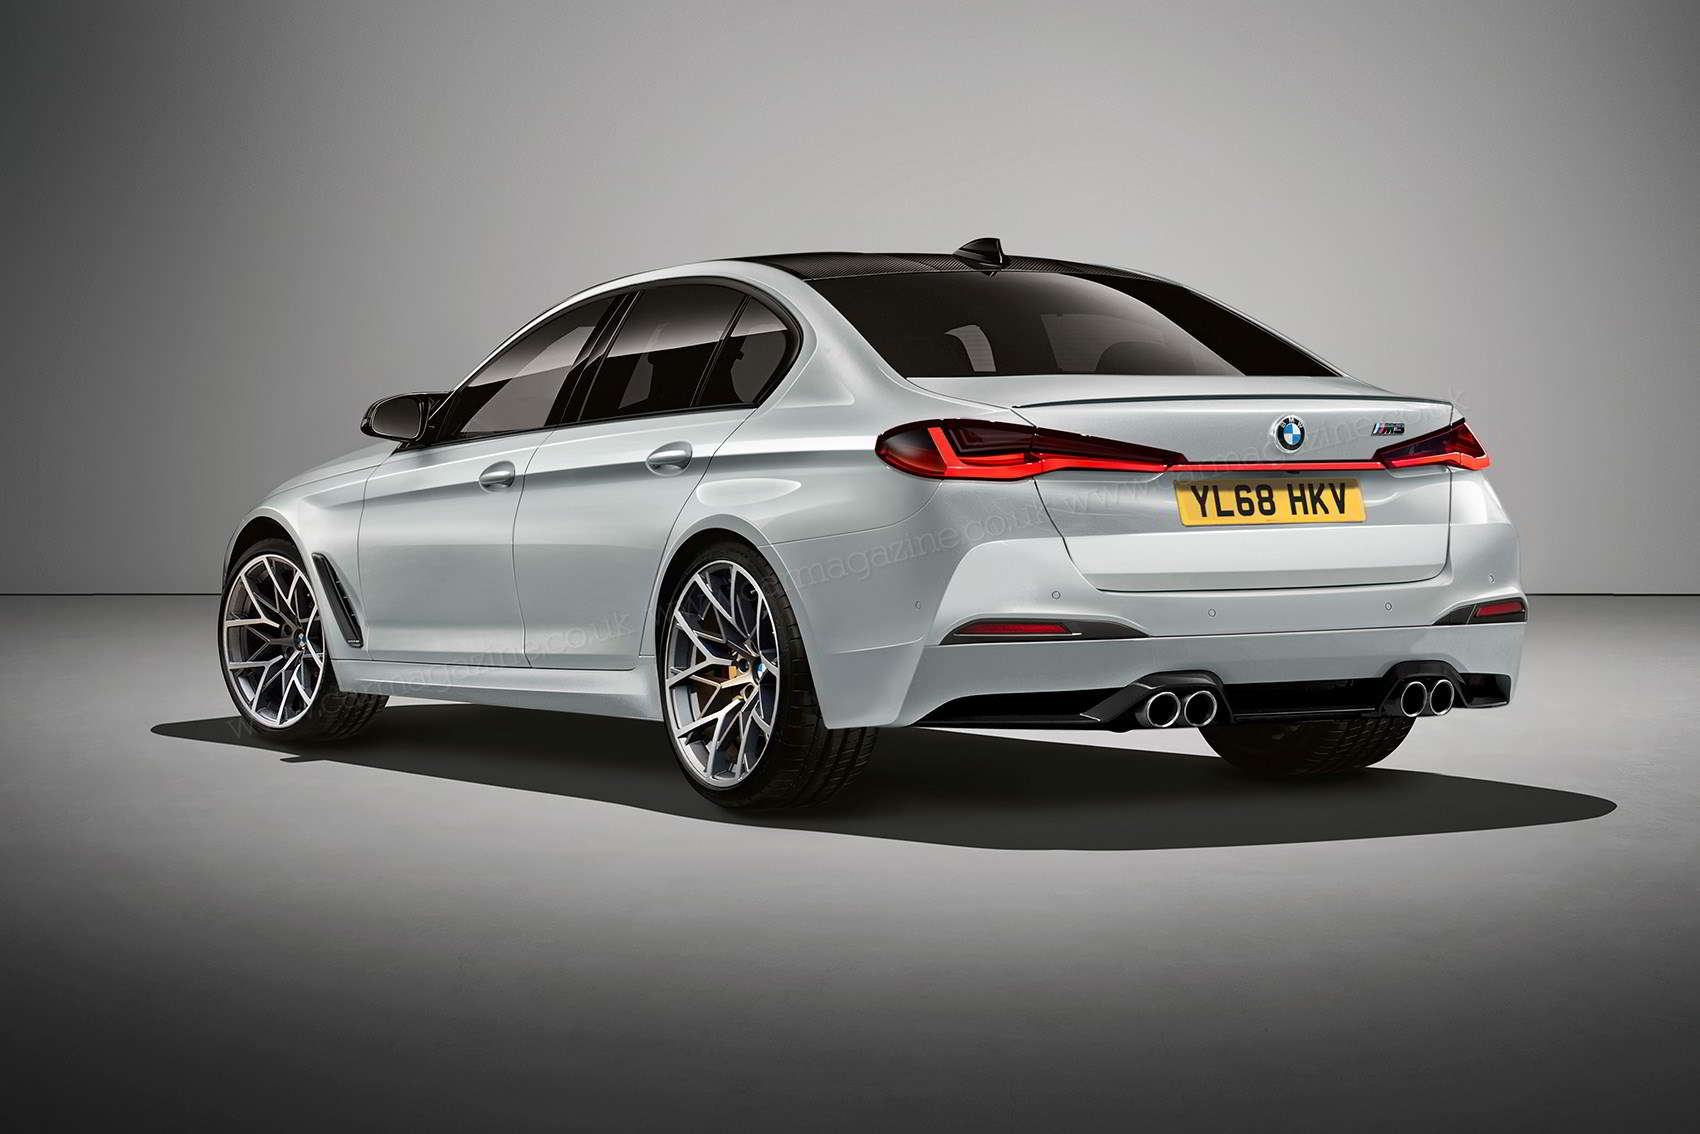 80 The Best 2020 BMW 550I Concept and Review